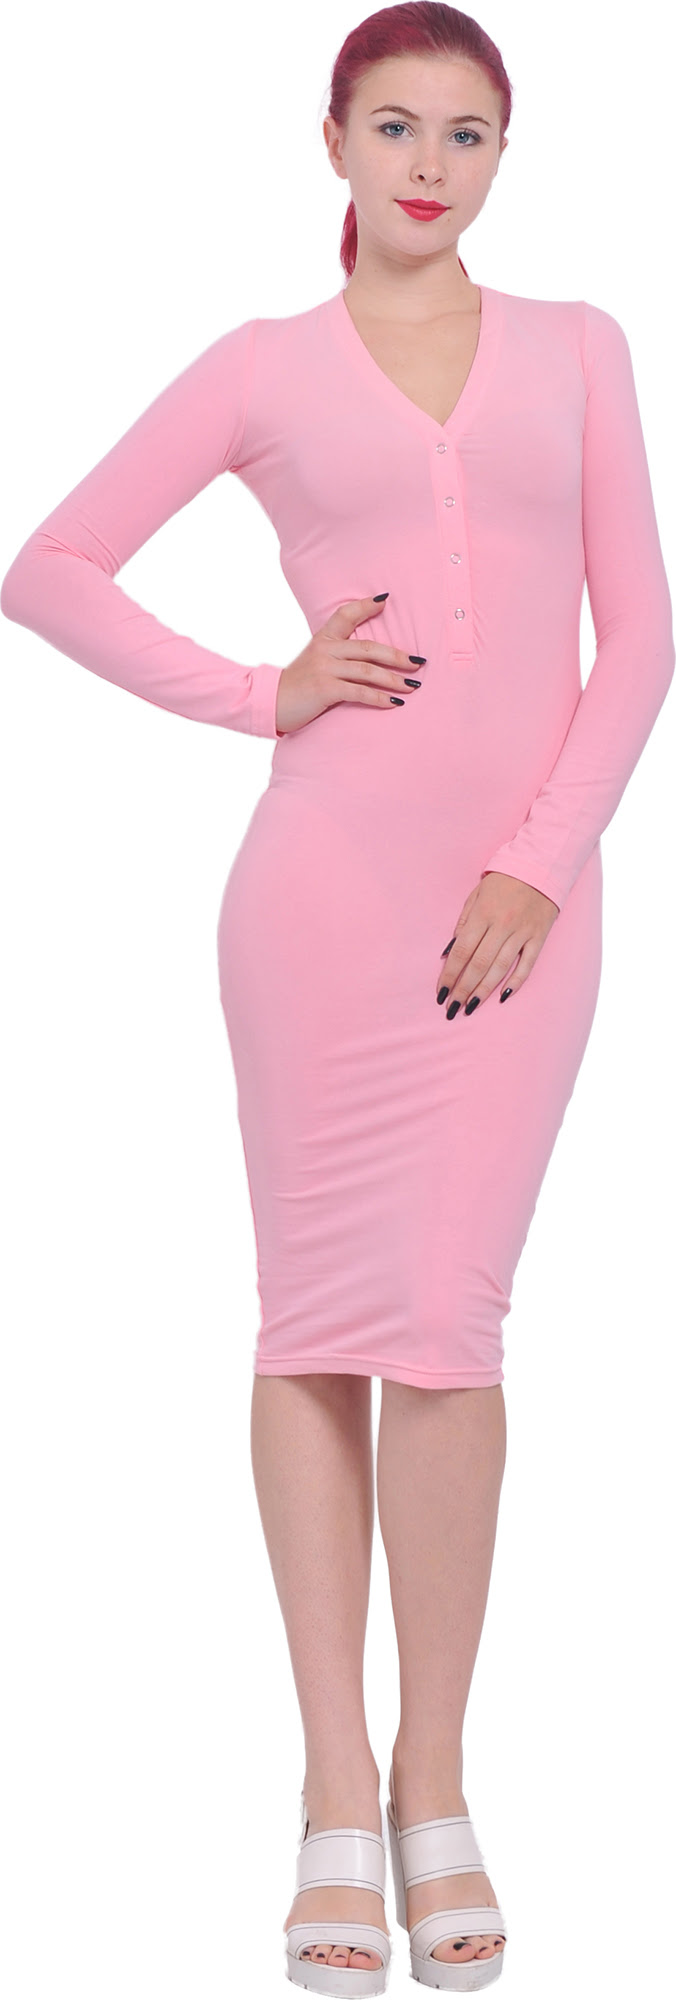 Length the iconic bodycon dress on skinny girl on line gold open